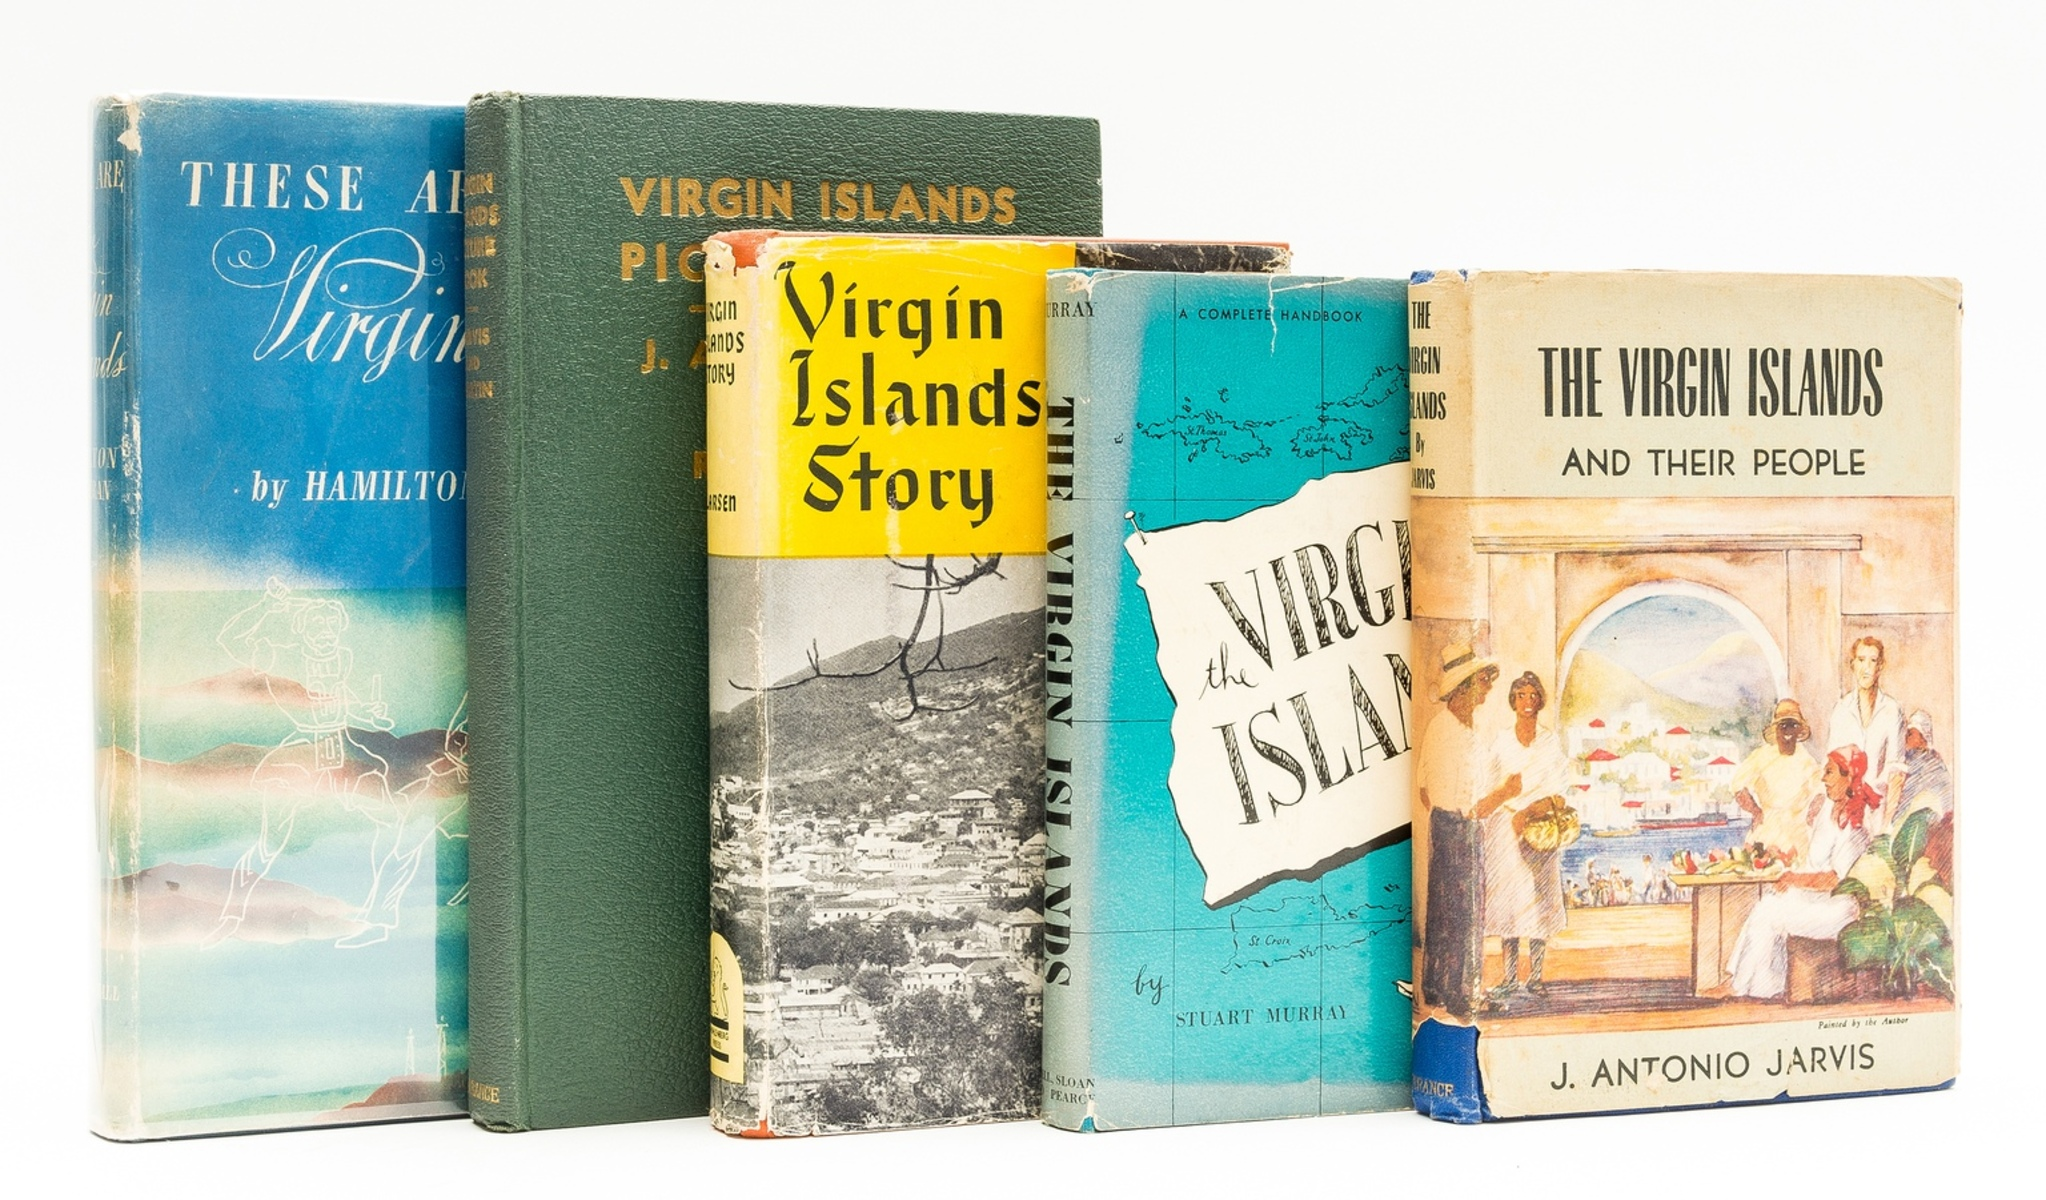 The Virgin Islands.- Jarvis (J. Antonio) The Virgin Islands and Their People, 1944; and 4 others …